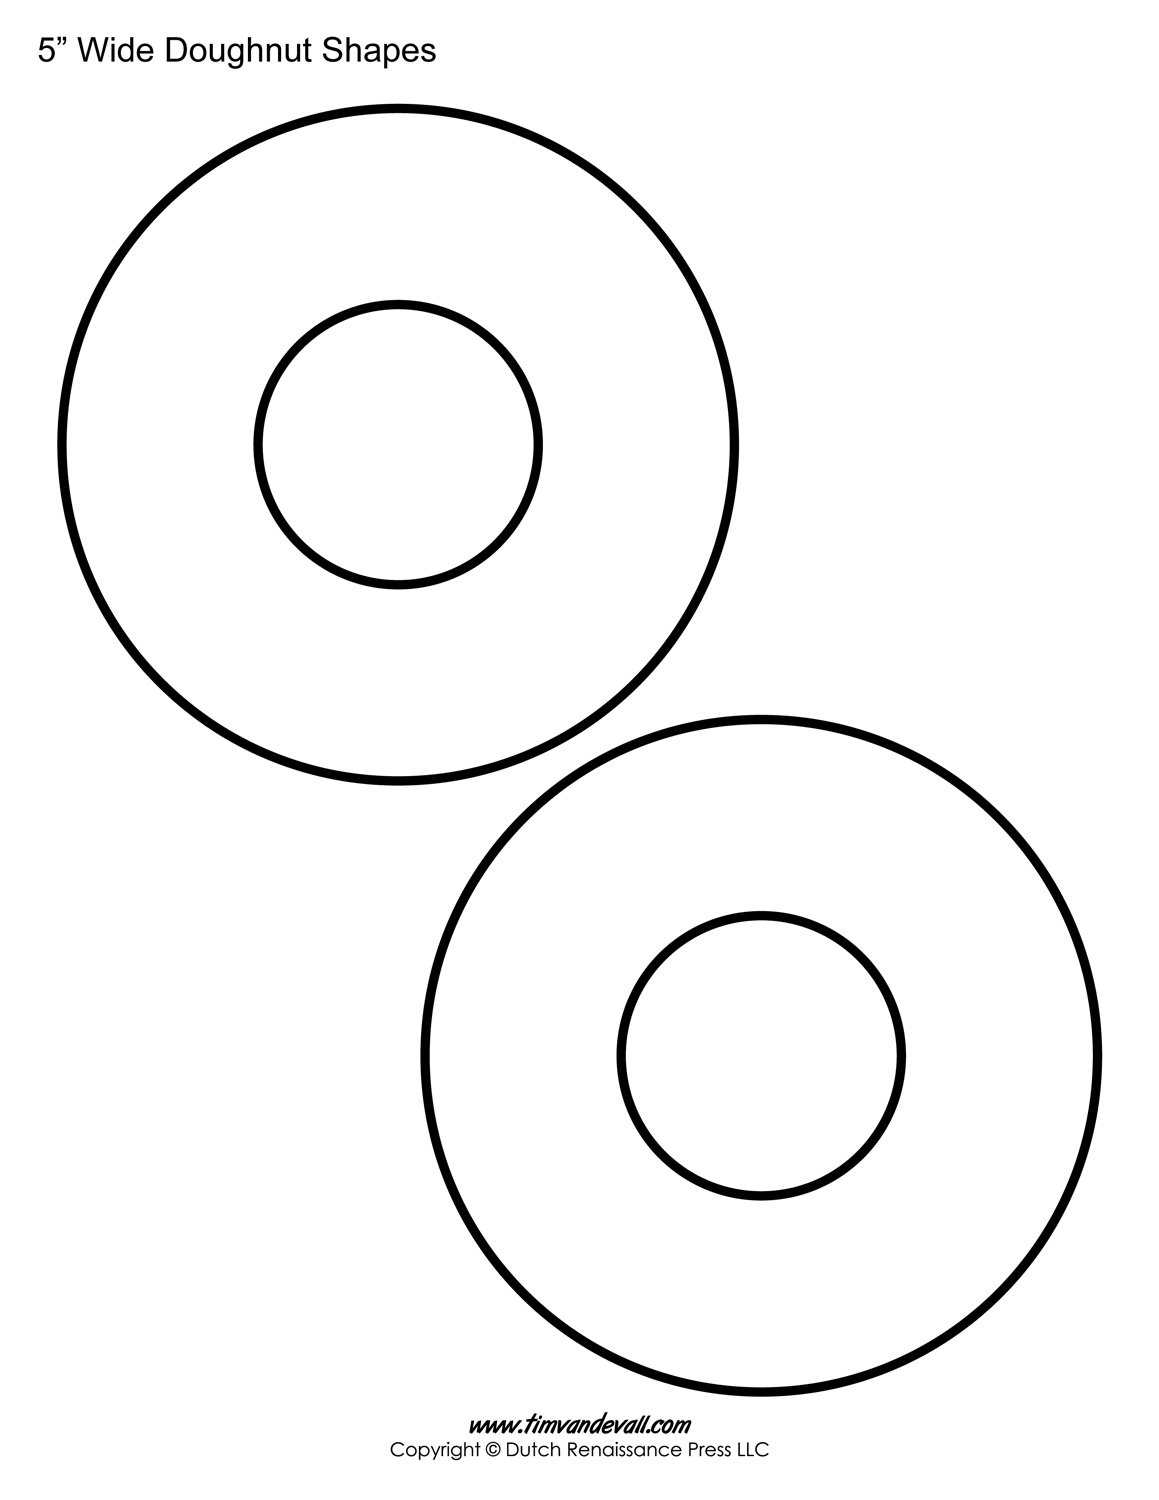 Printable Donut Templates